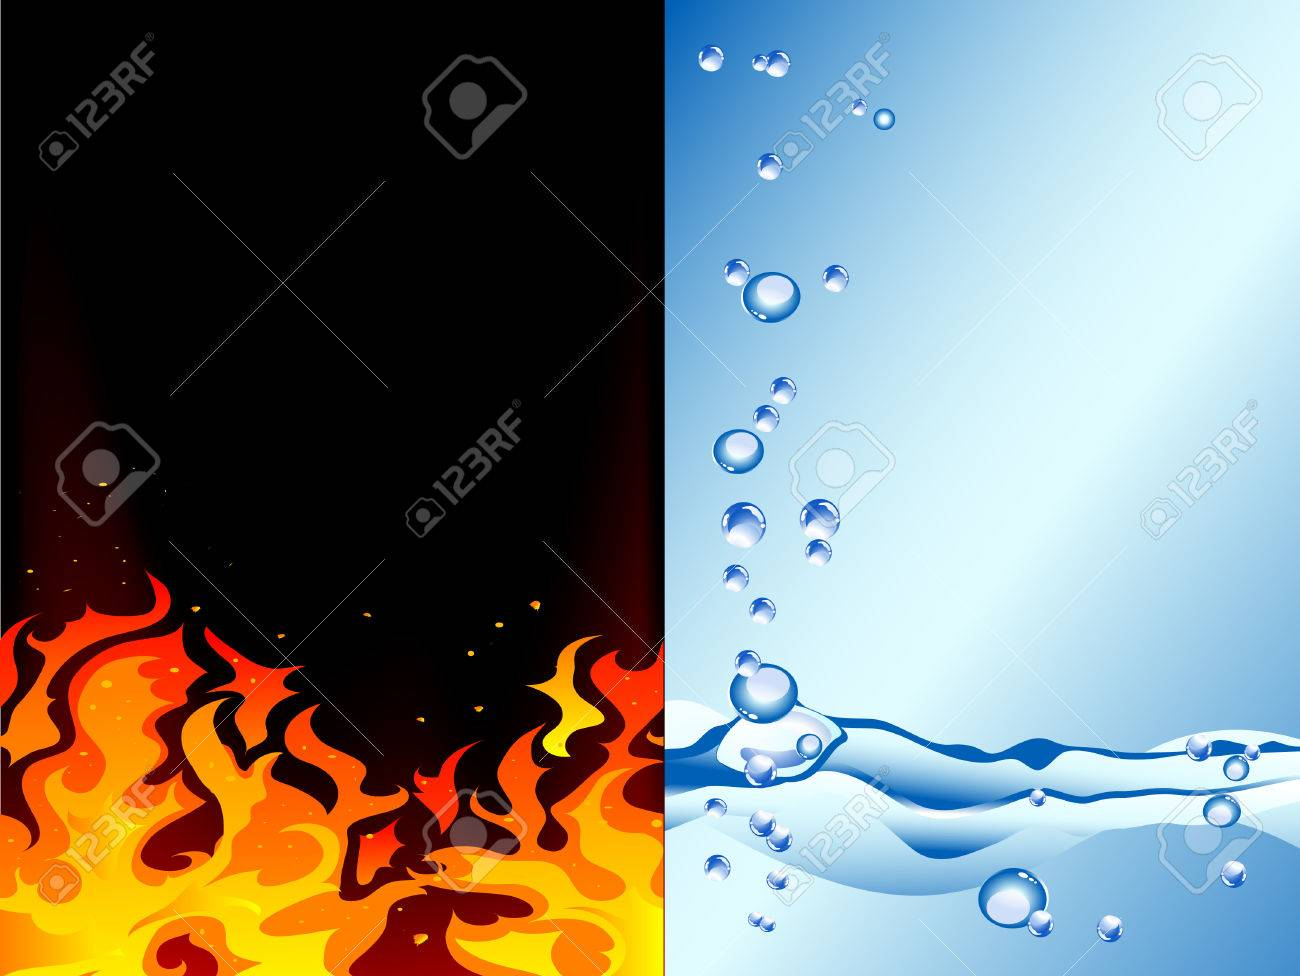 Fire and water - abstract vector illustration Stock Vector - 7950538